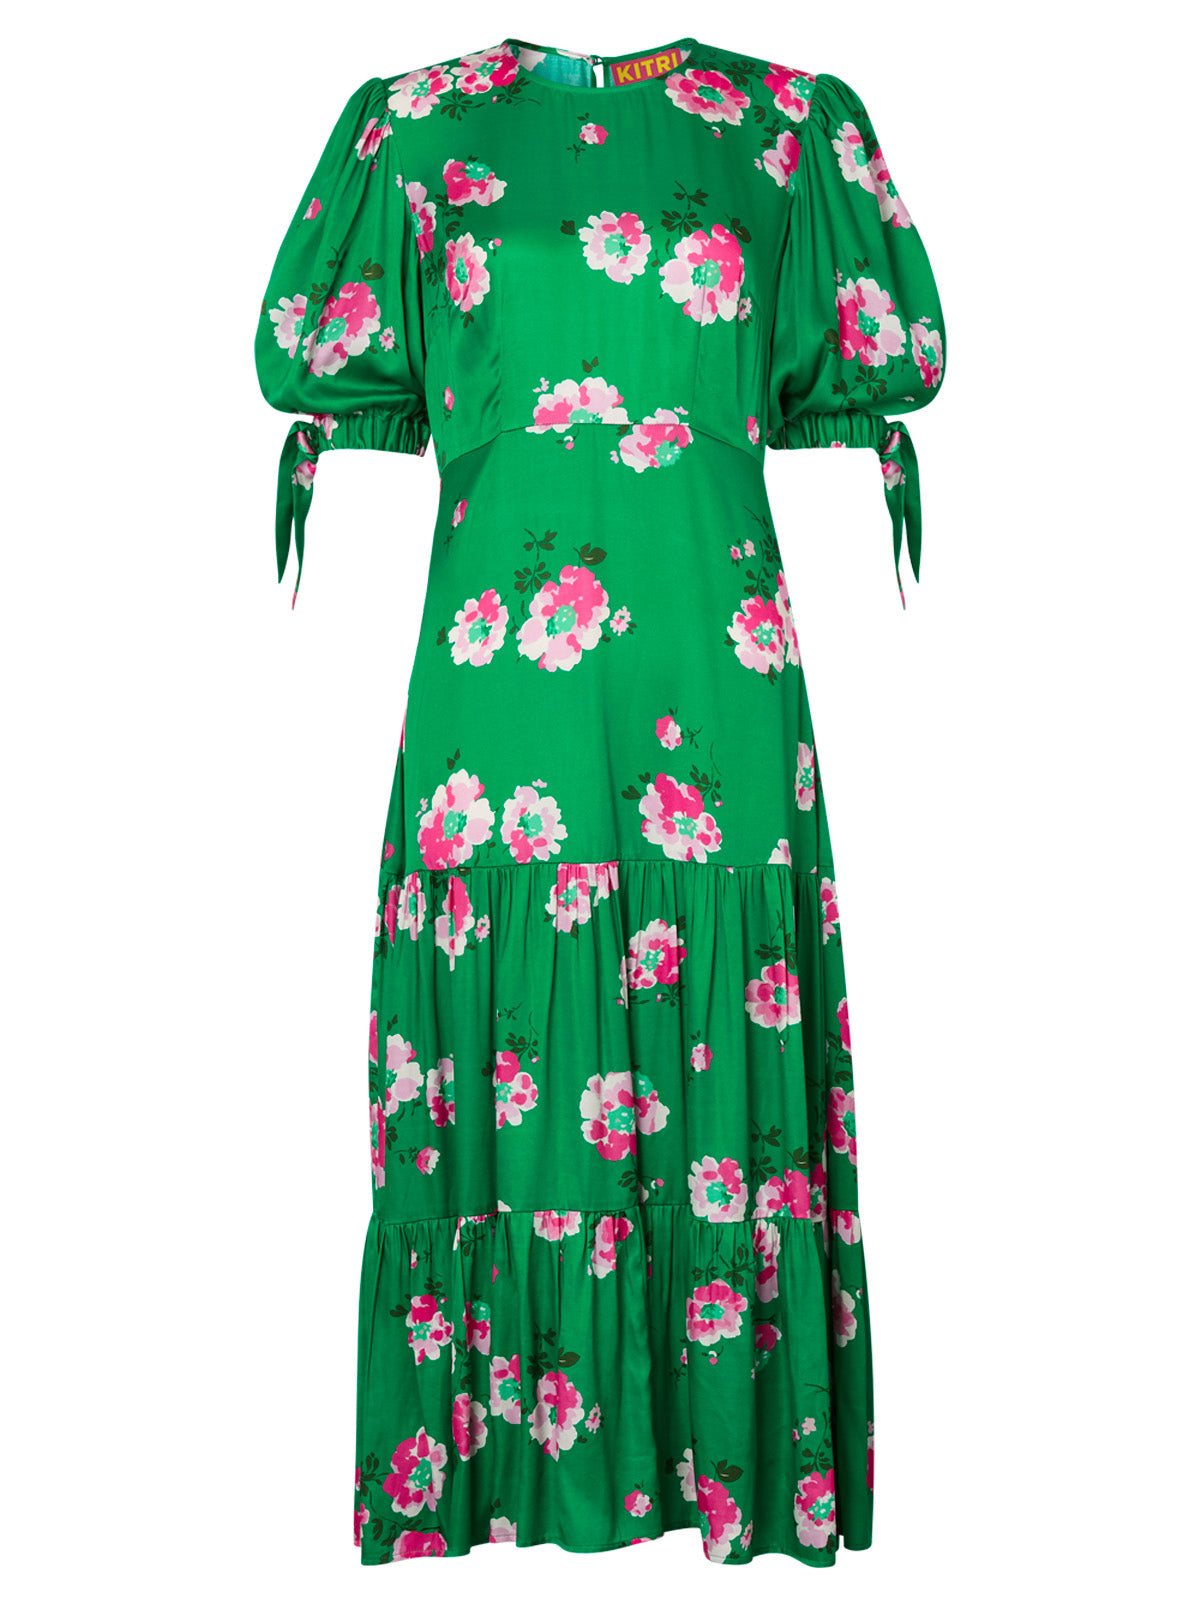 Heather Green Floral Dress by KITRI Studio